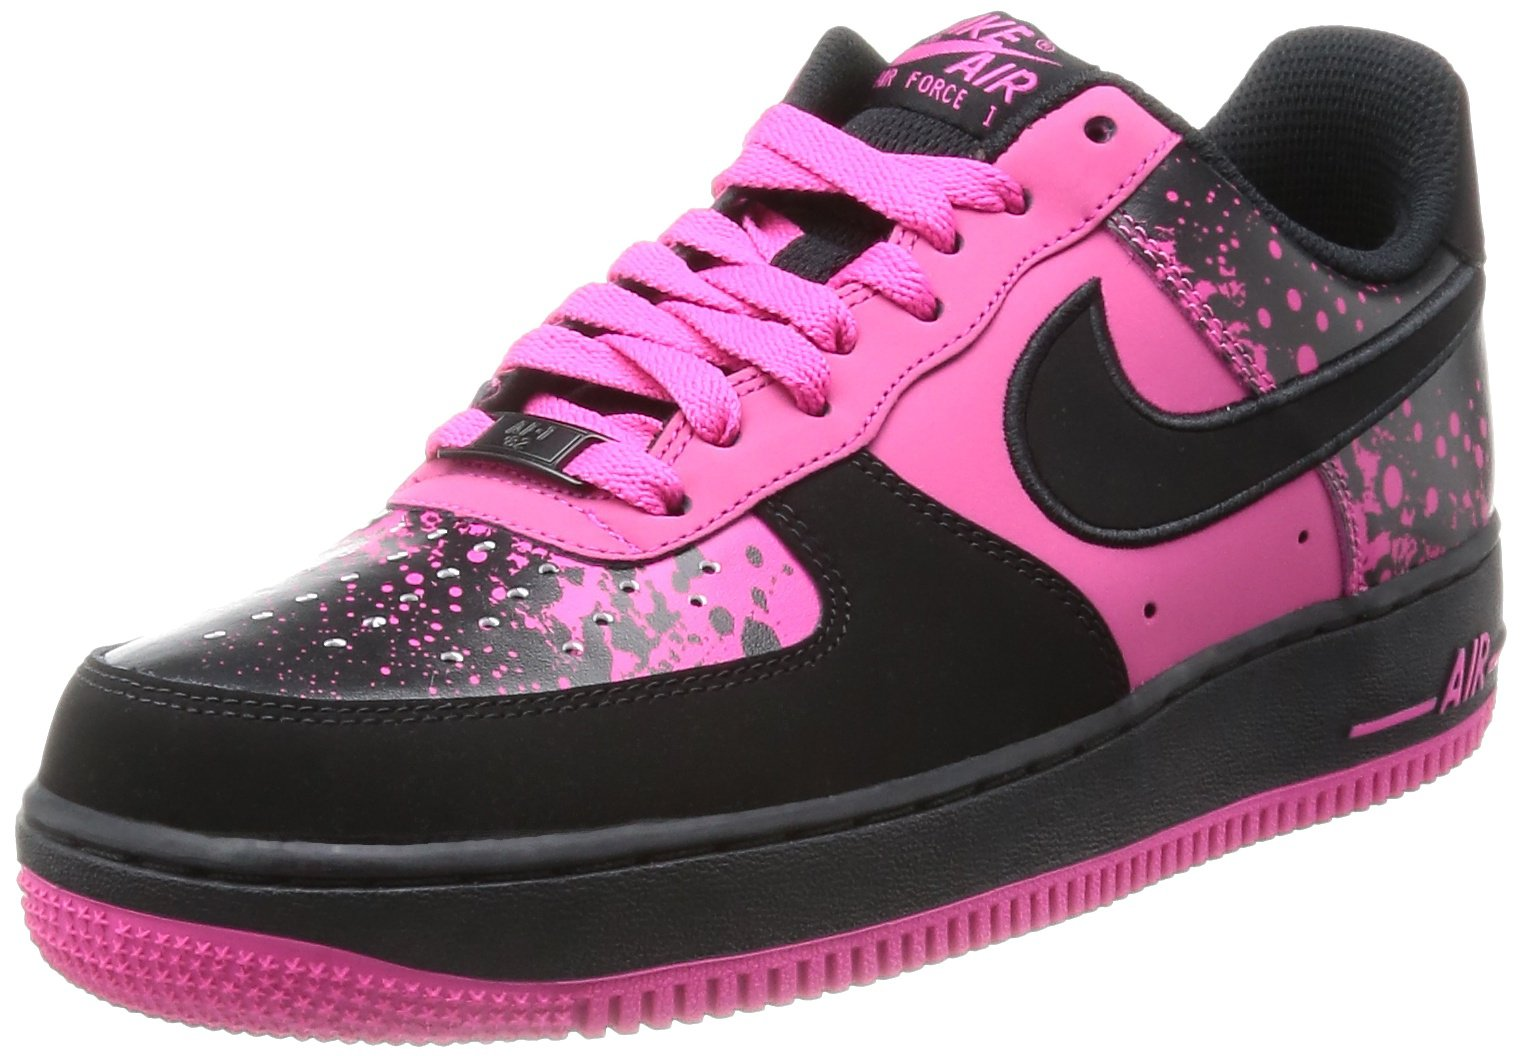 Nike Air Force 1 Mens Basketball Shoes Color: Black/ Vivid Pink